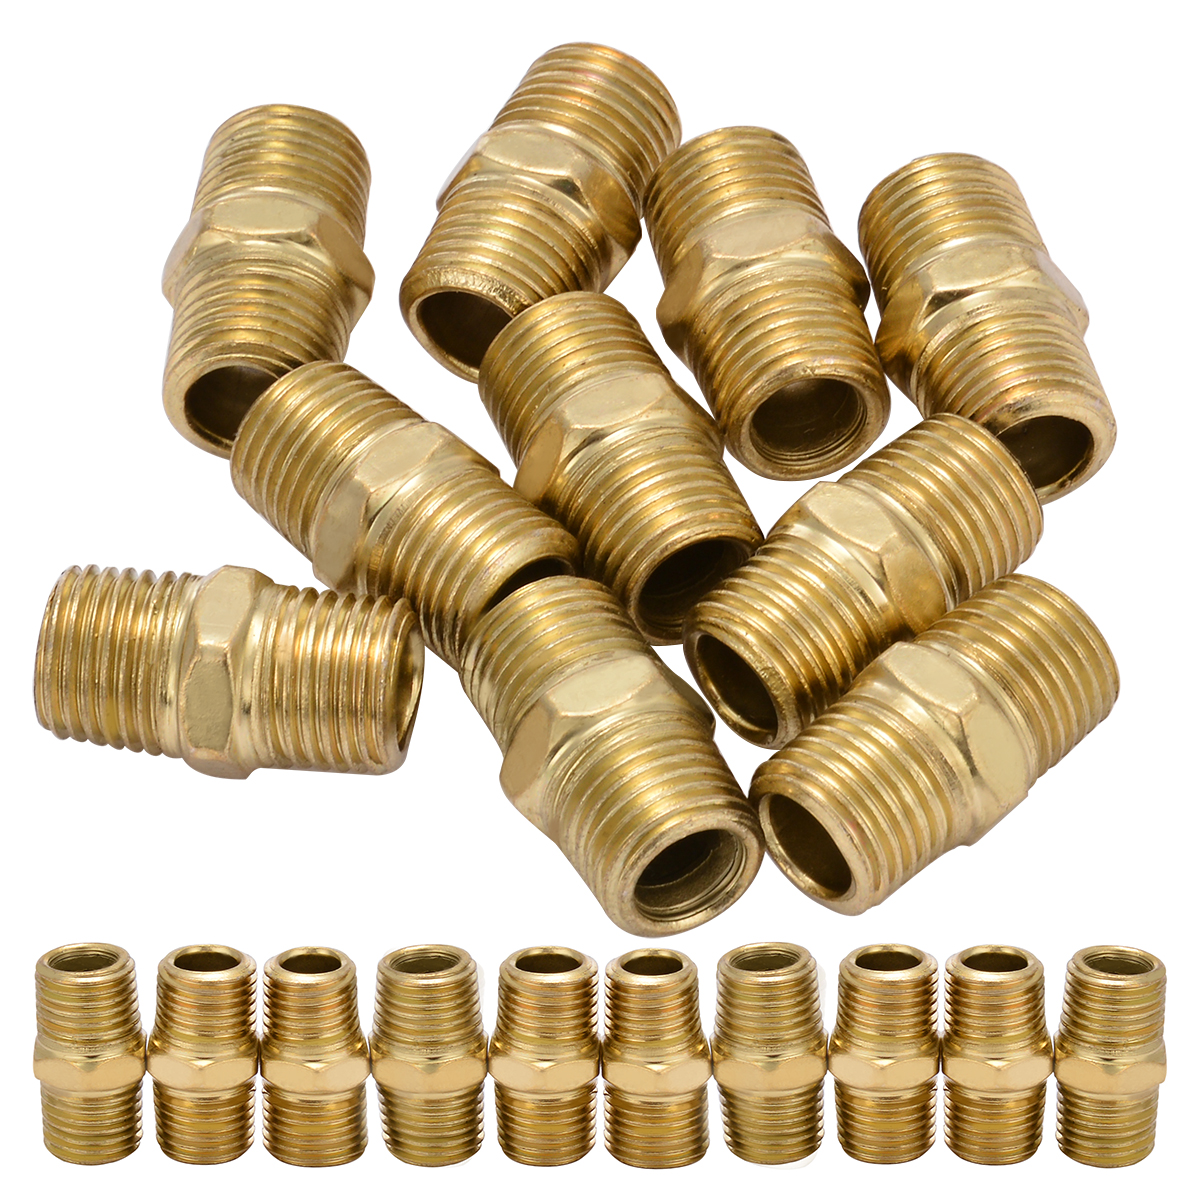 10pcs 1/4 BSP Male Thread Quick Couplers Euro Air Line Hose Fitting Connector Quick Release Connector with Corrosion Resistance10pcs 1/4 BSP Male Thread Quick Couplers Euro Air Line Hose Fitting Connector Quick Release Connector with Corrosion Resistance